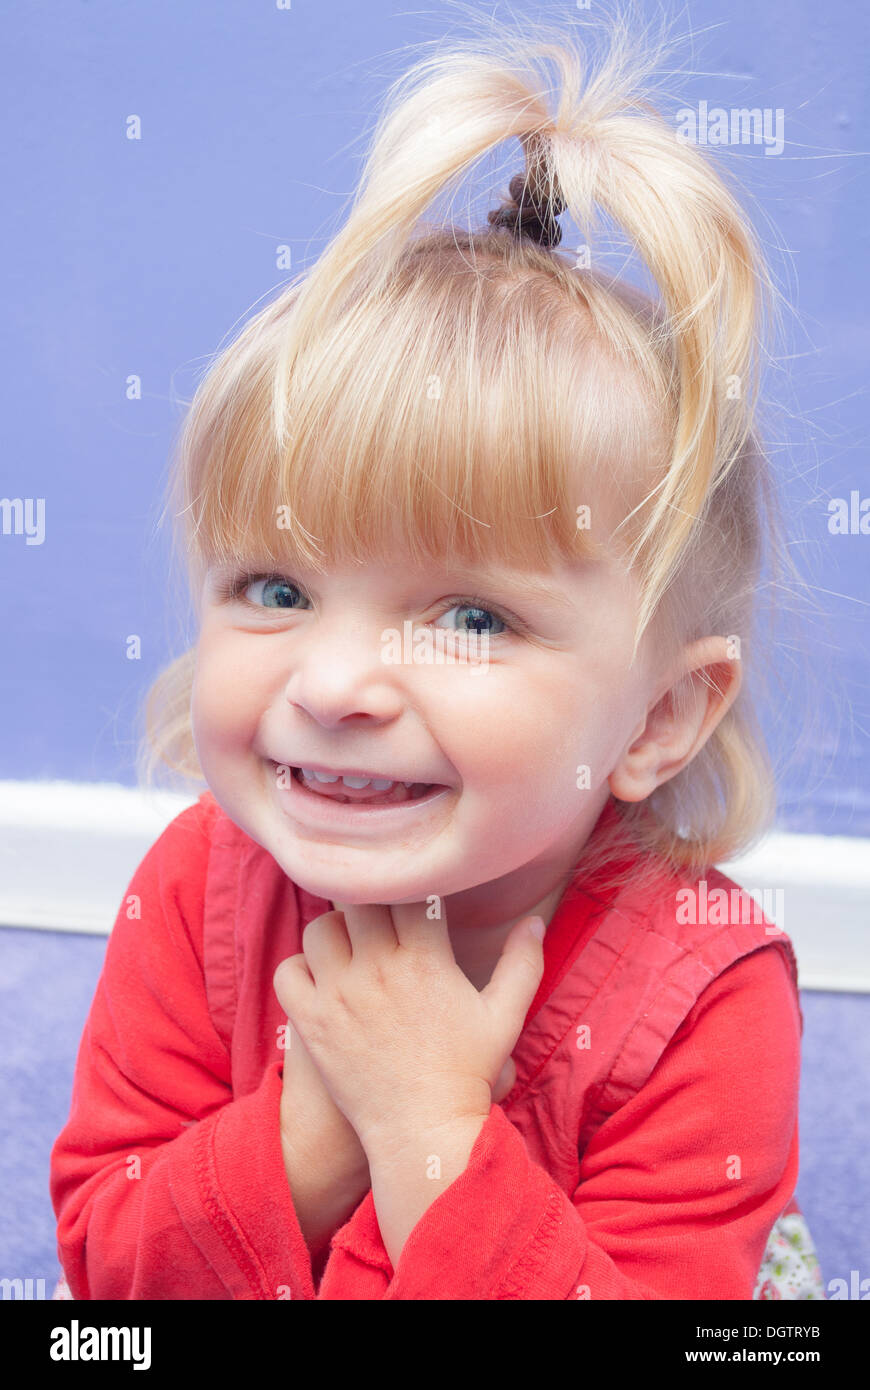 An eighteen Month old little girl smiling sweetly holding her hands under her chin. - Stock Image